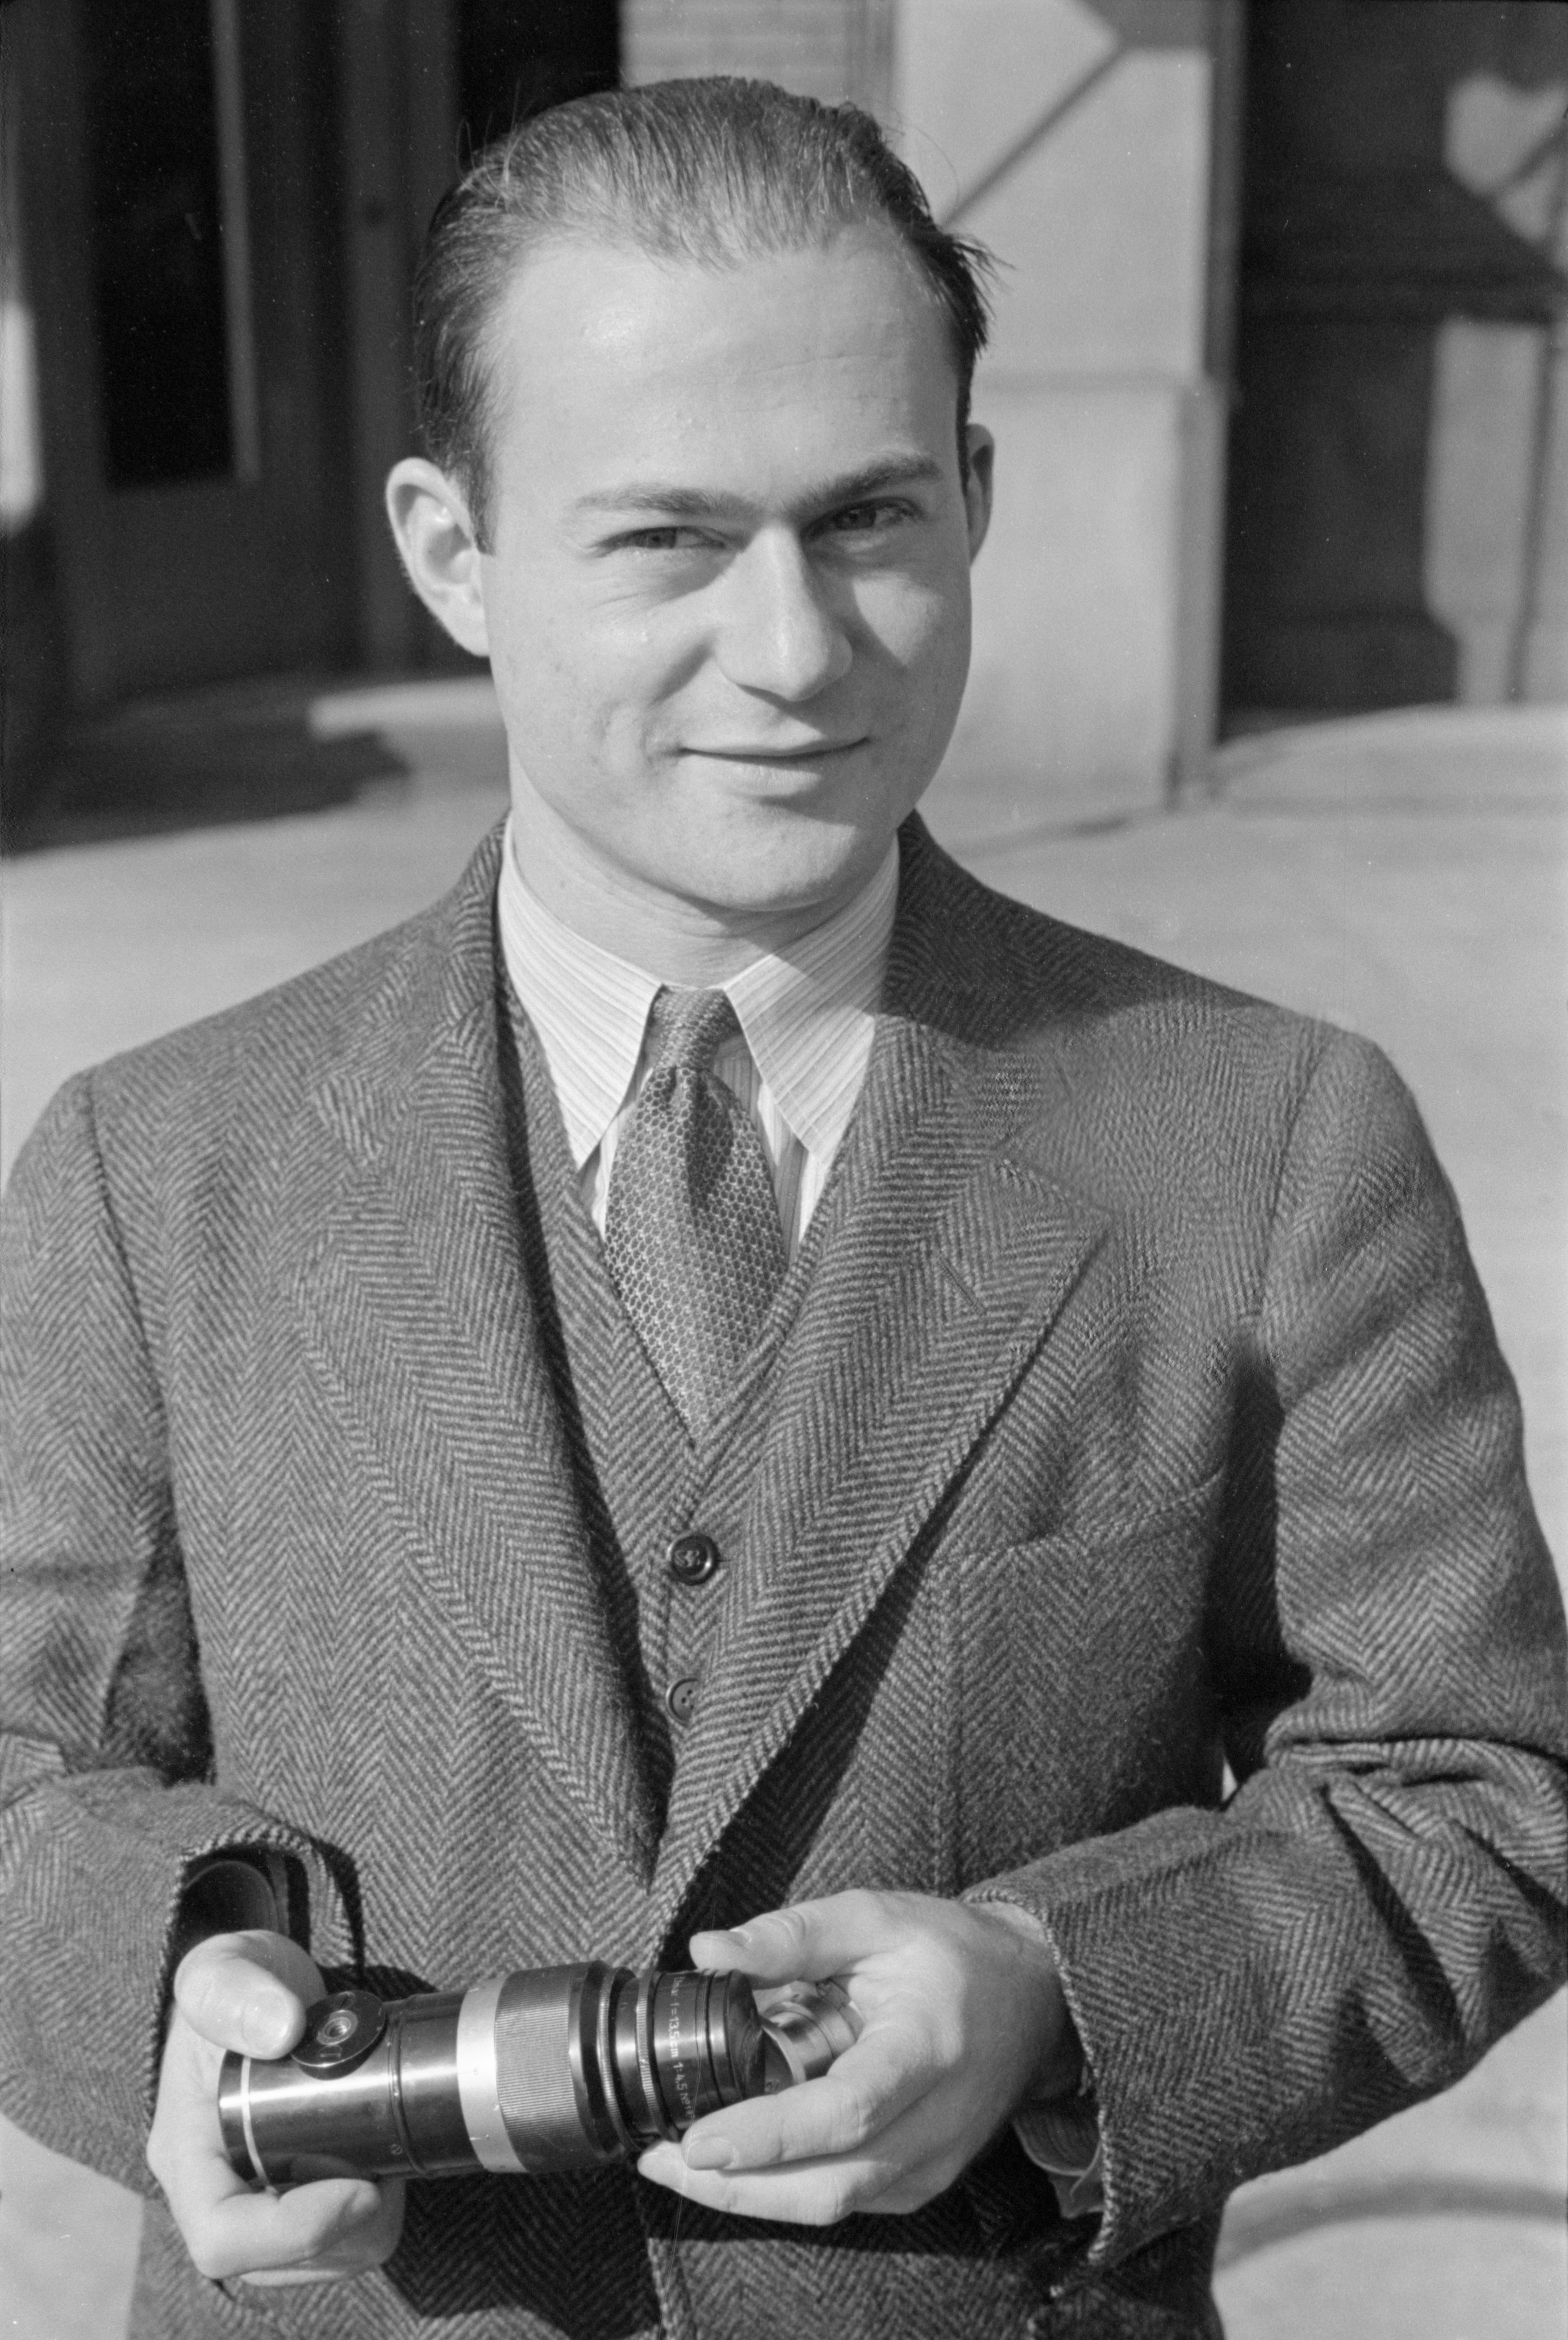 Image of Arthur Rothstein from Wikidata